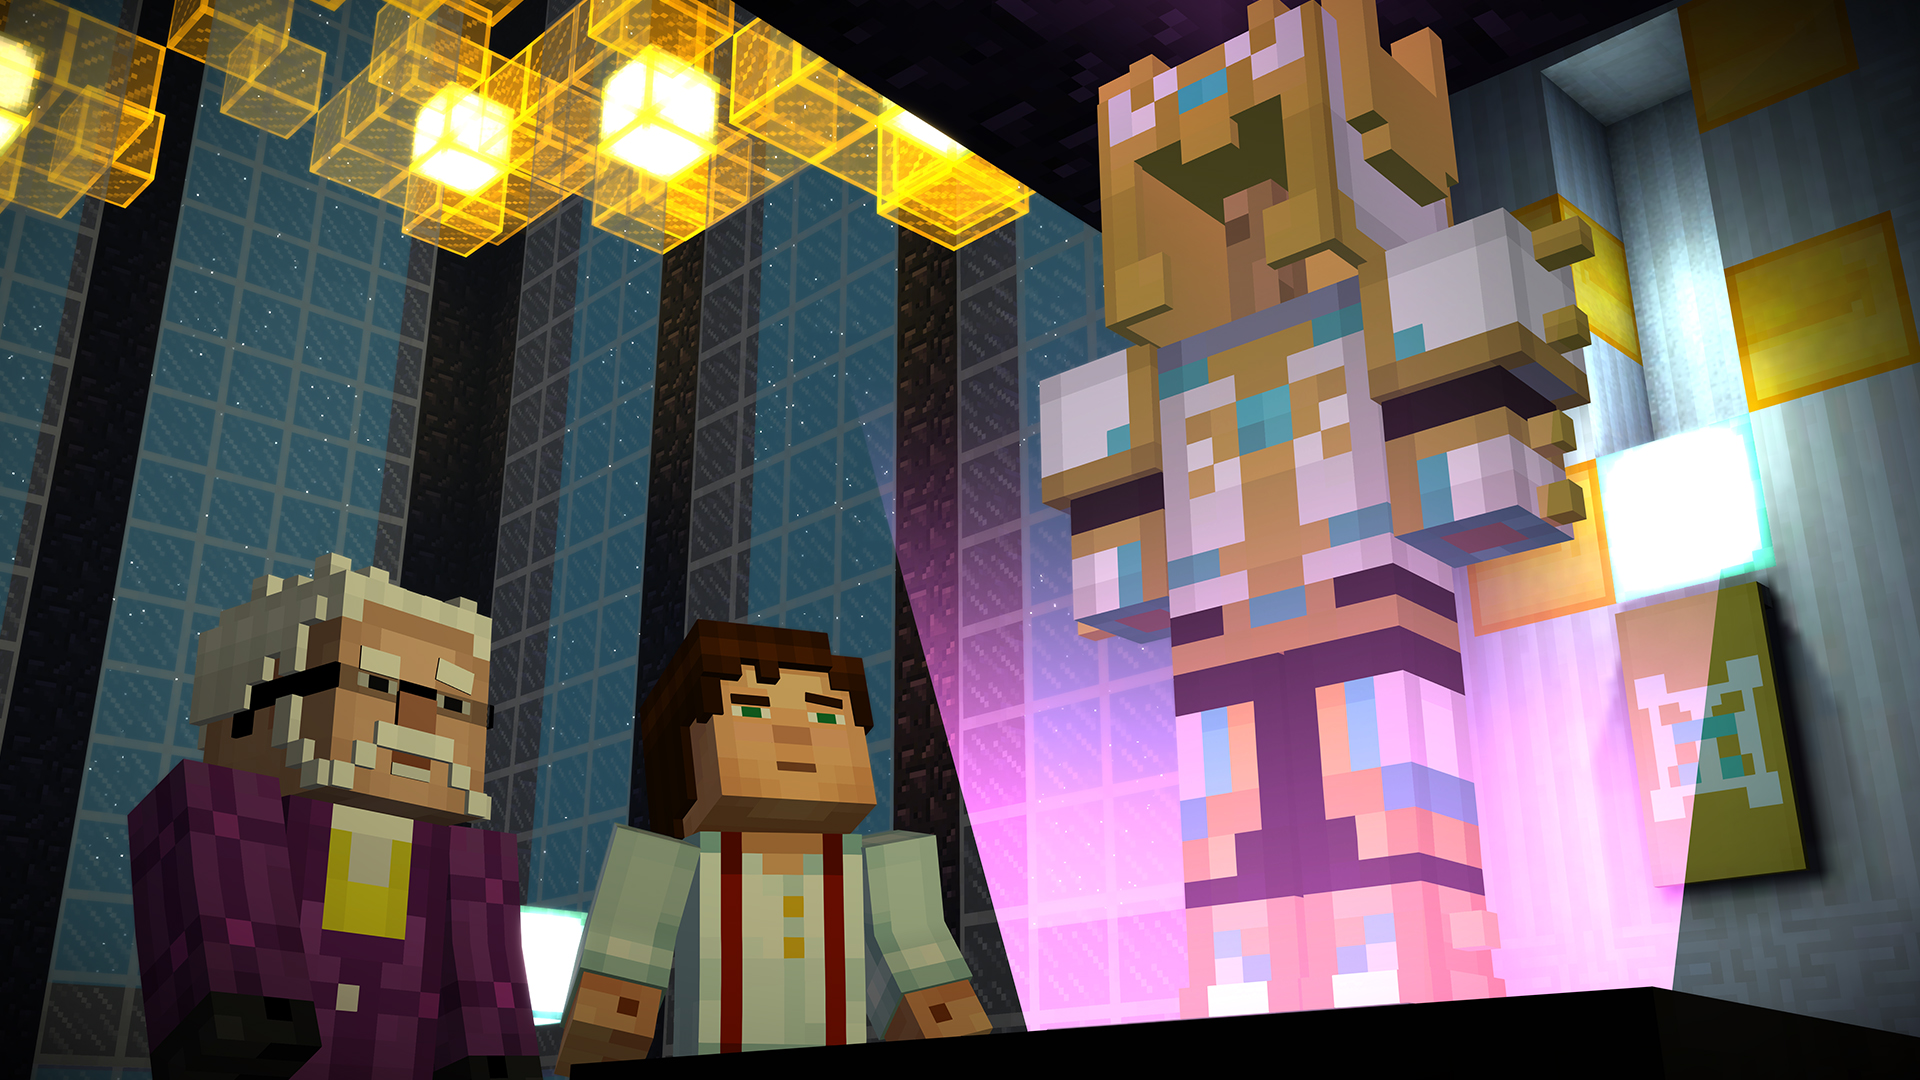 minecraft-story-mode-episode-8-screenshot-1